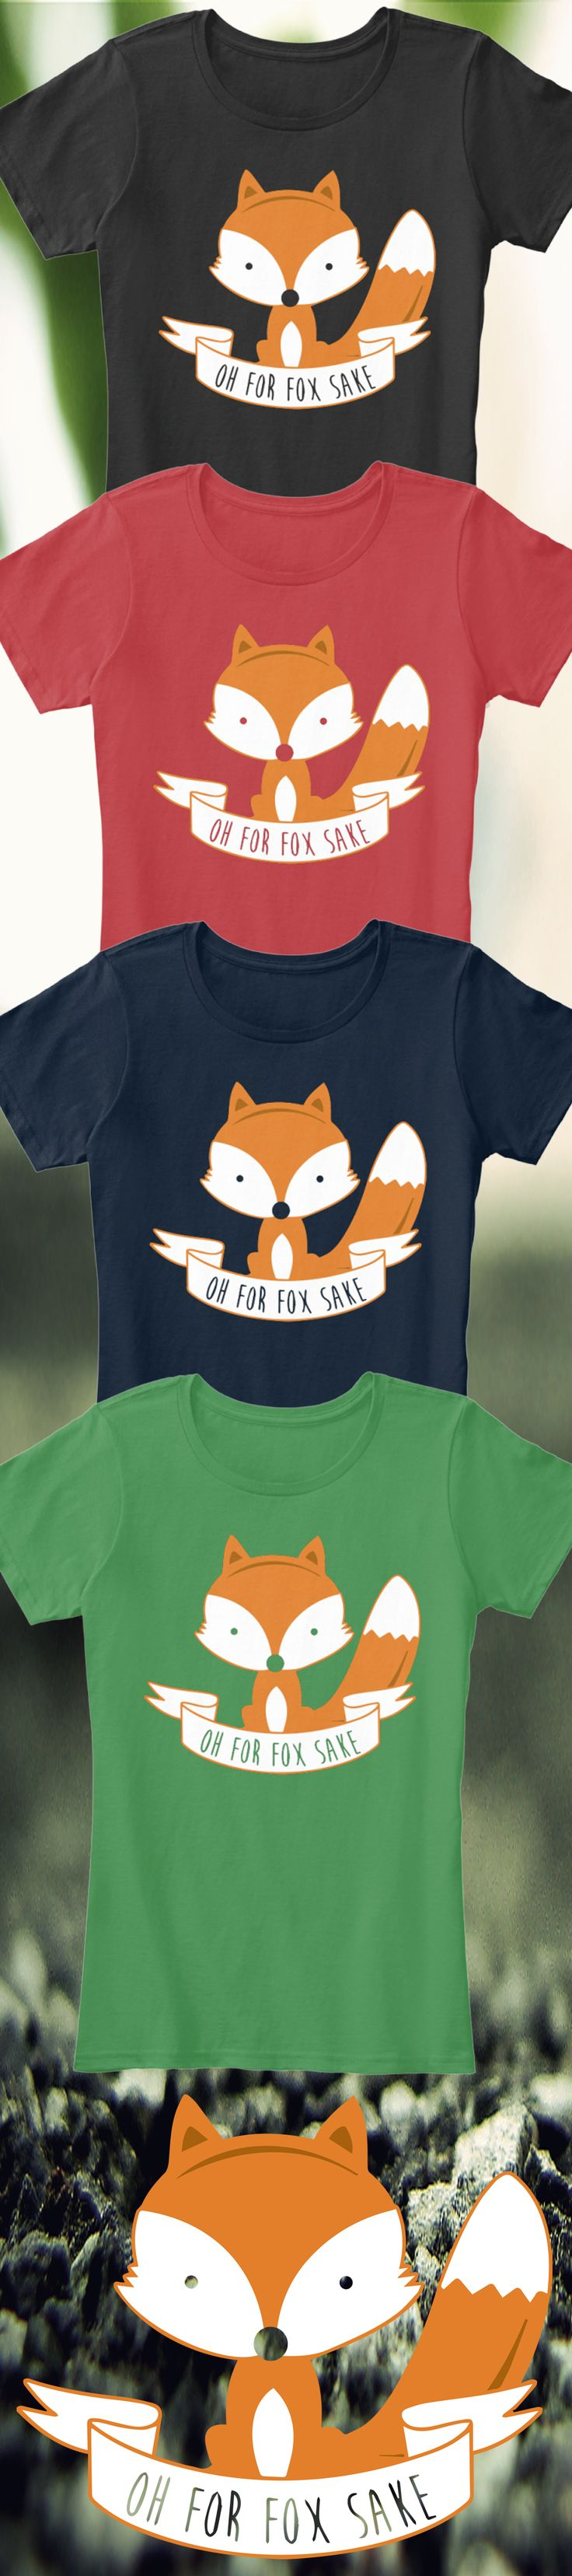 Check out this awesome For Fox Sake t-shirt you will not find anywhere else. Not sold in stores and only 2 days left for free shipping! Grab yours or gift it to a friend, you will both love it